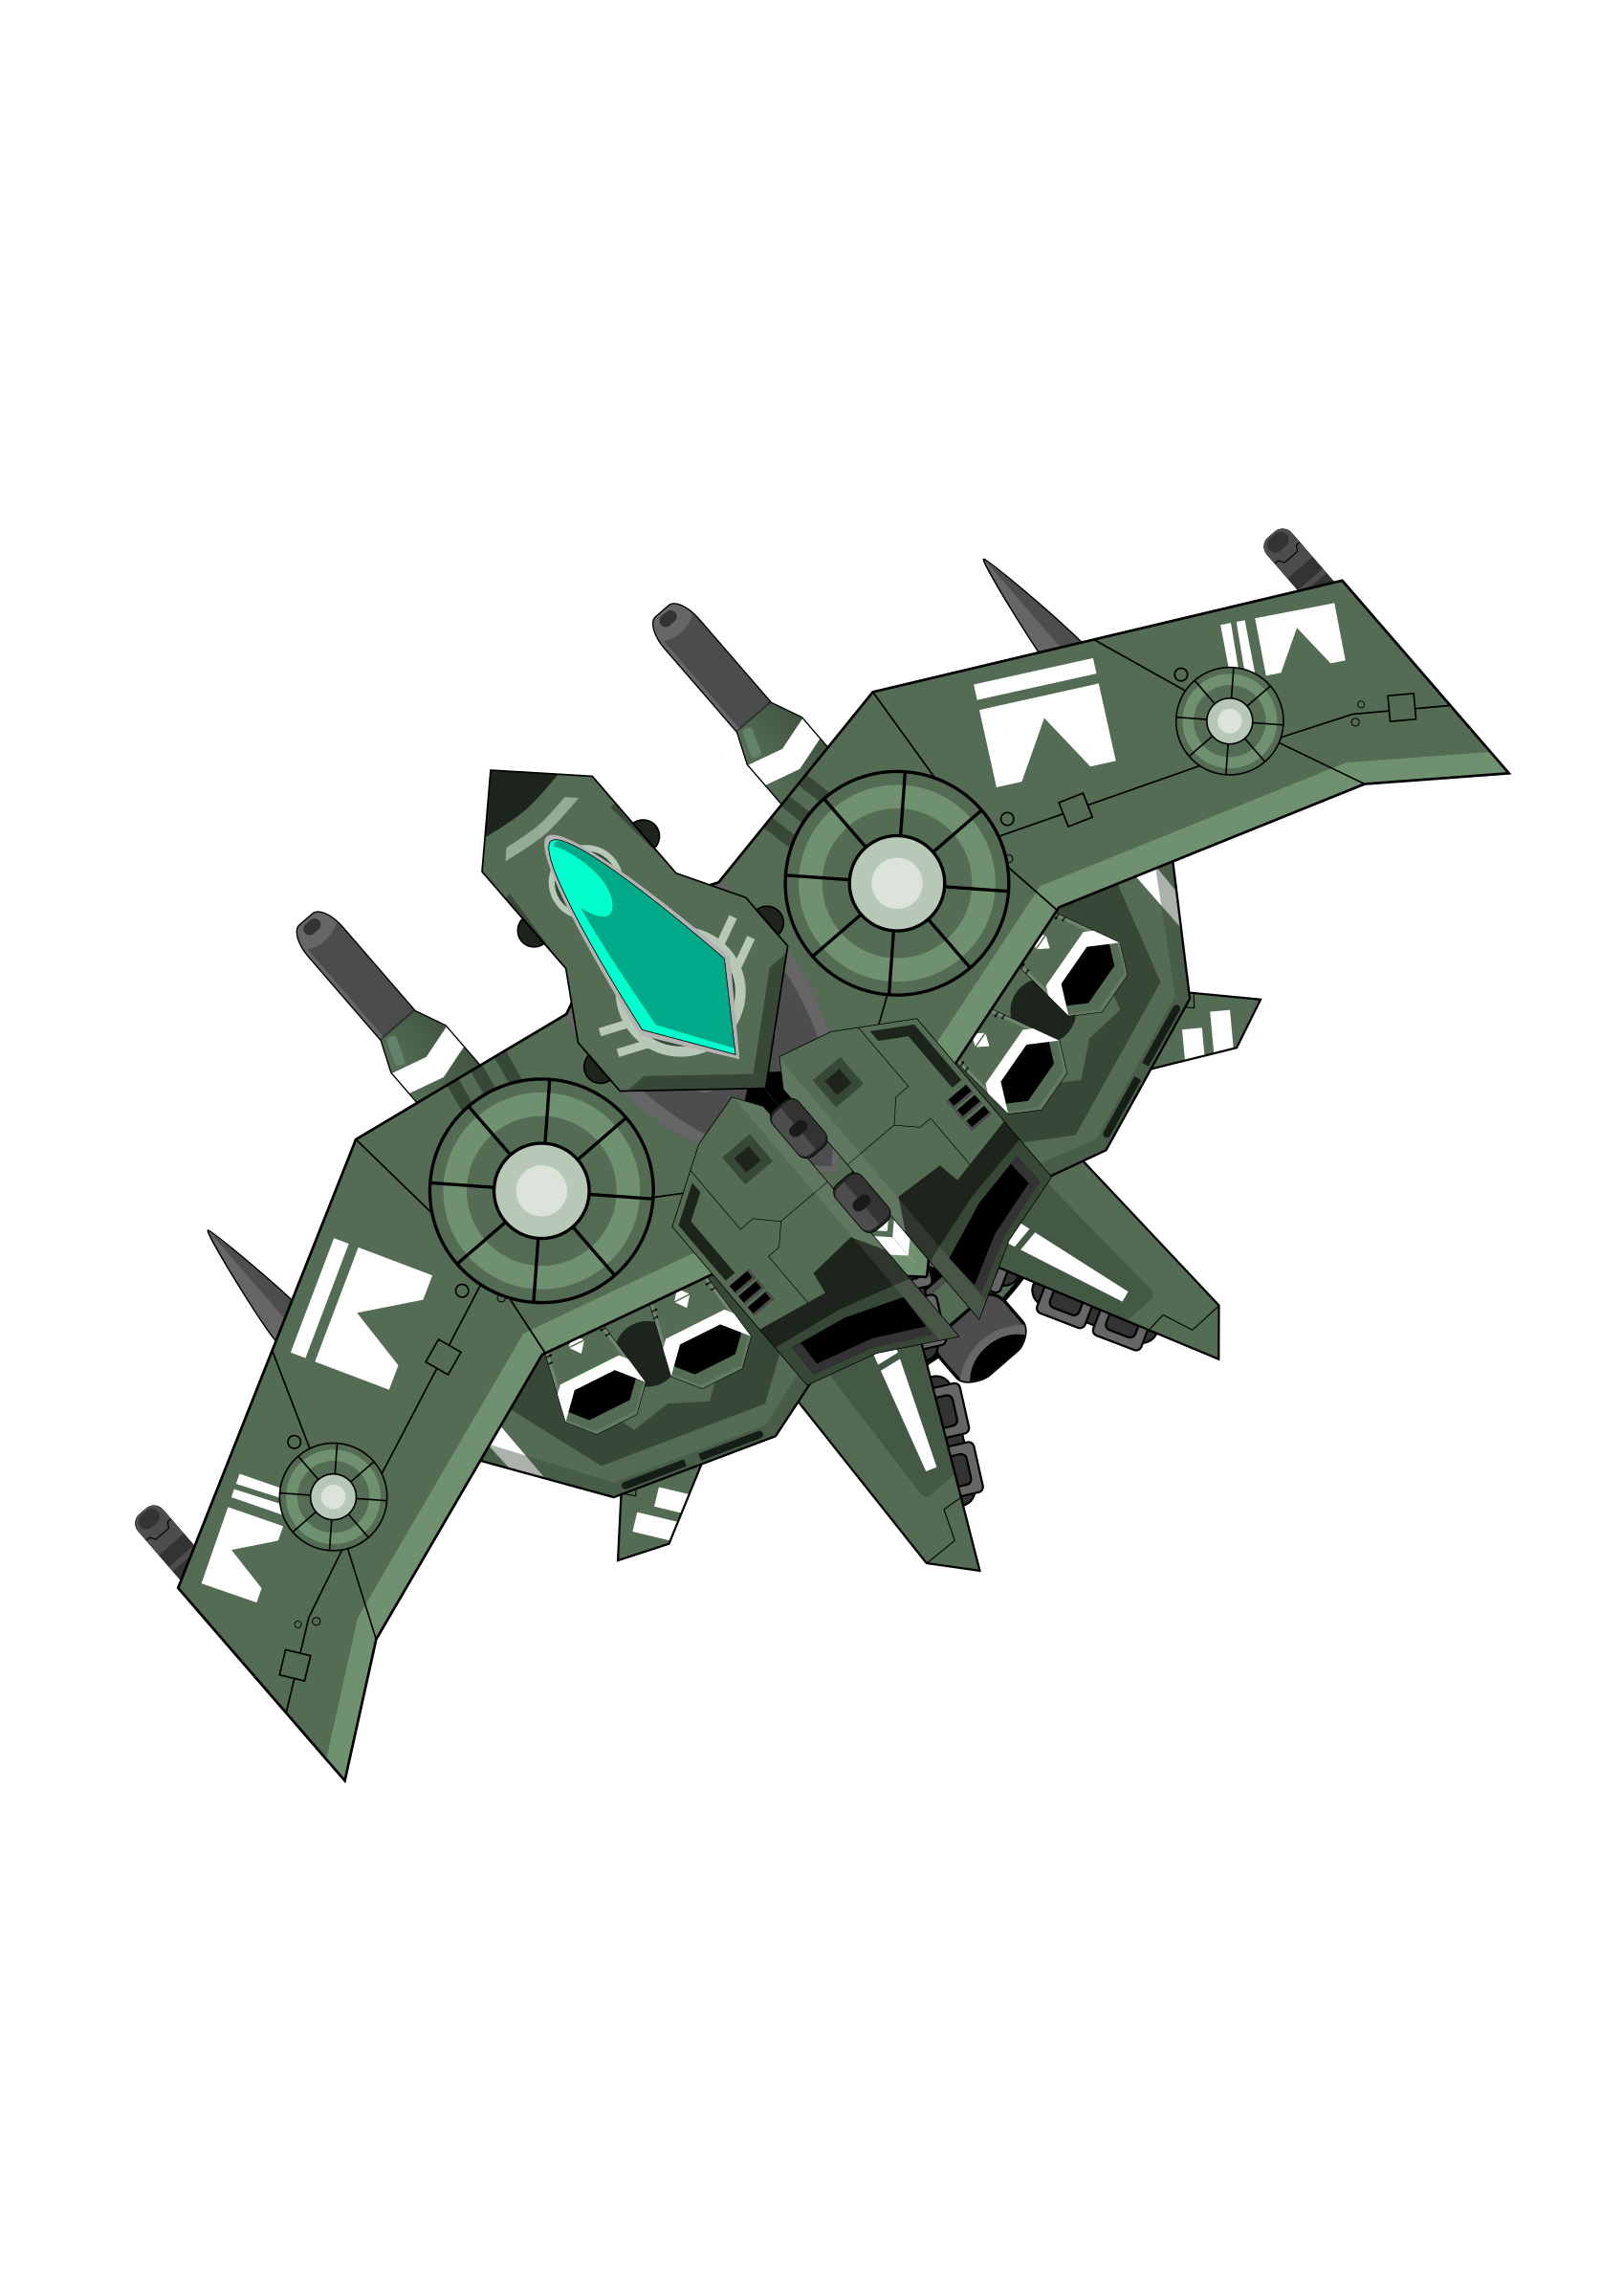 Green big image png. Spaceship clipart space fighter